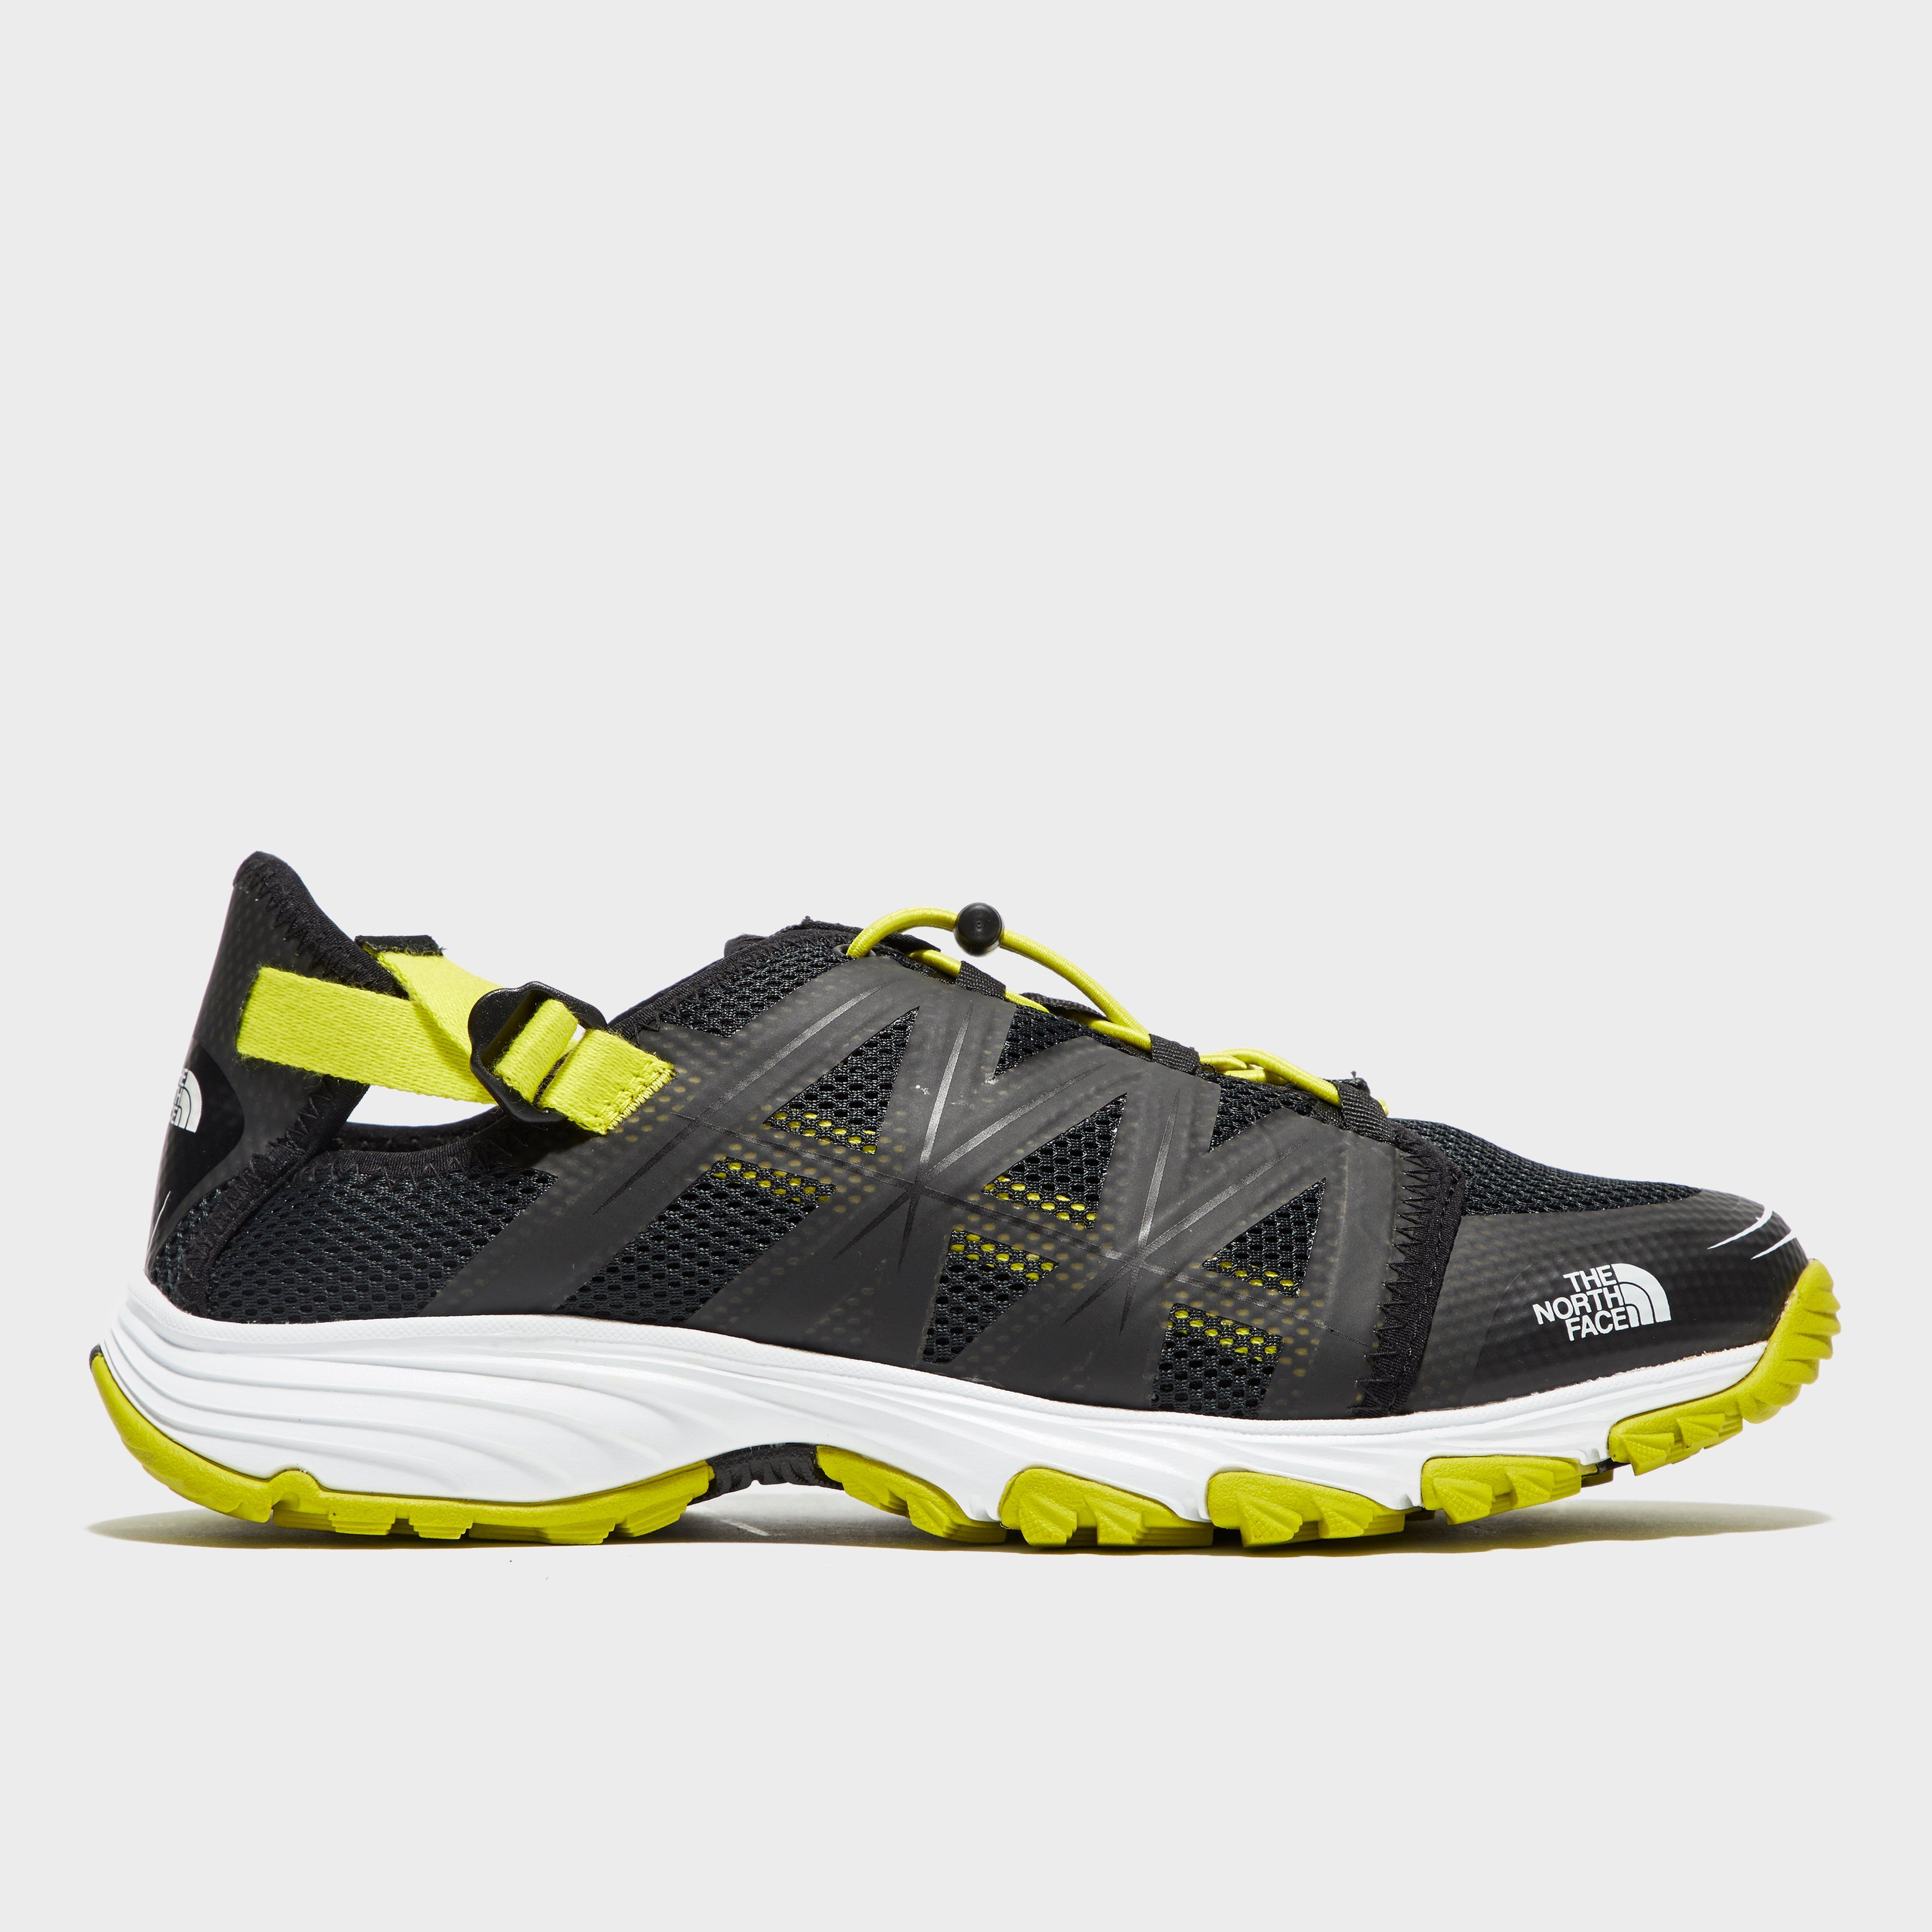 THE NORTH FACE Men's Litewave Amphibious Shoes